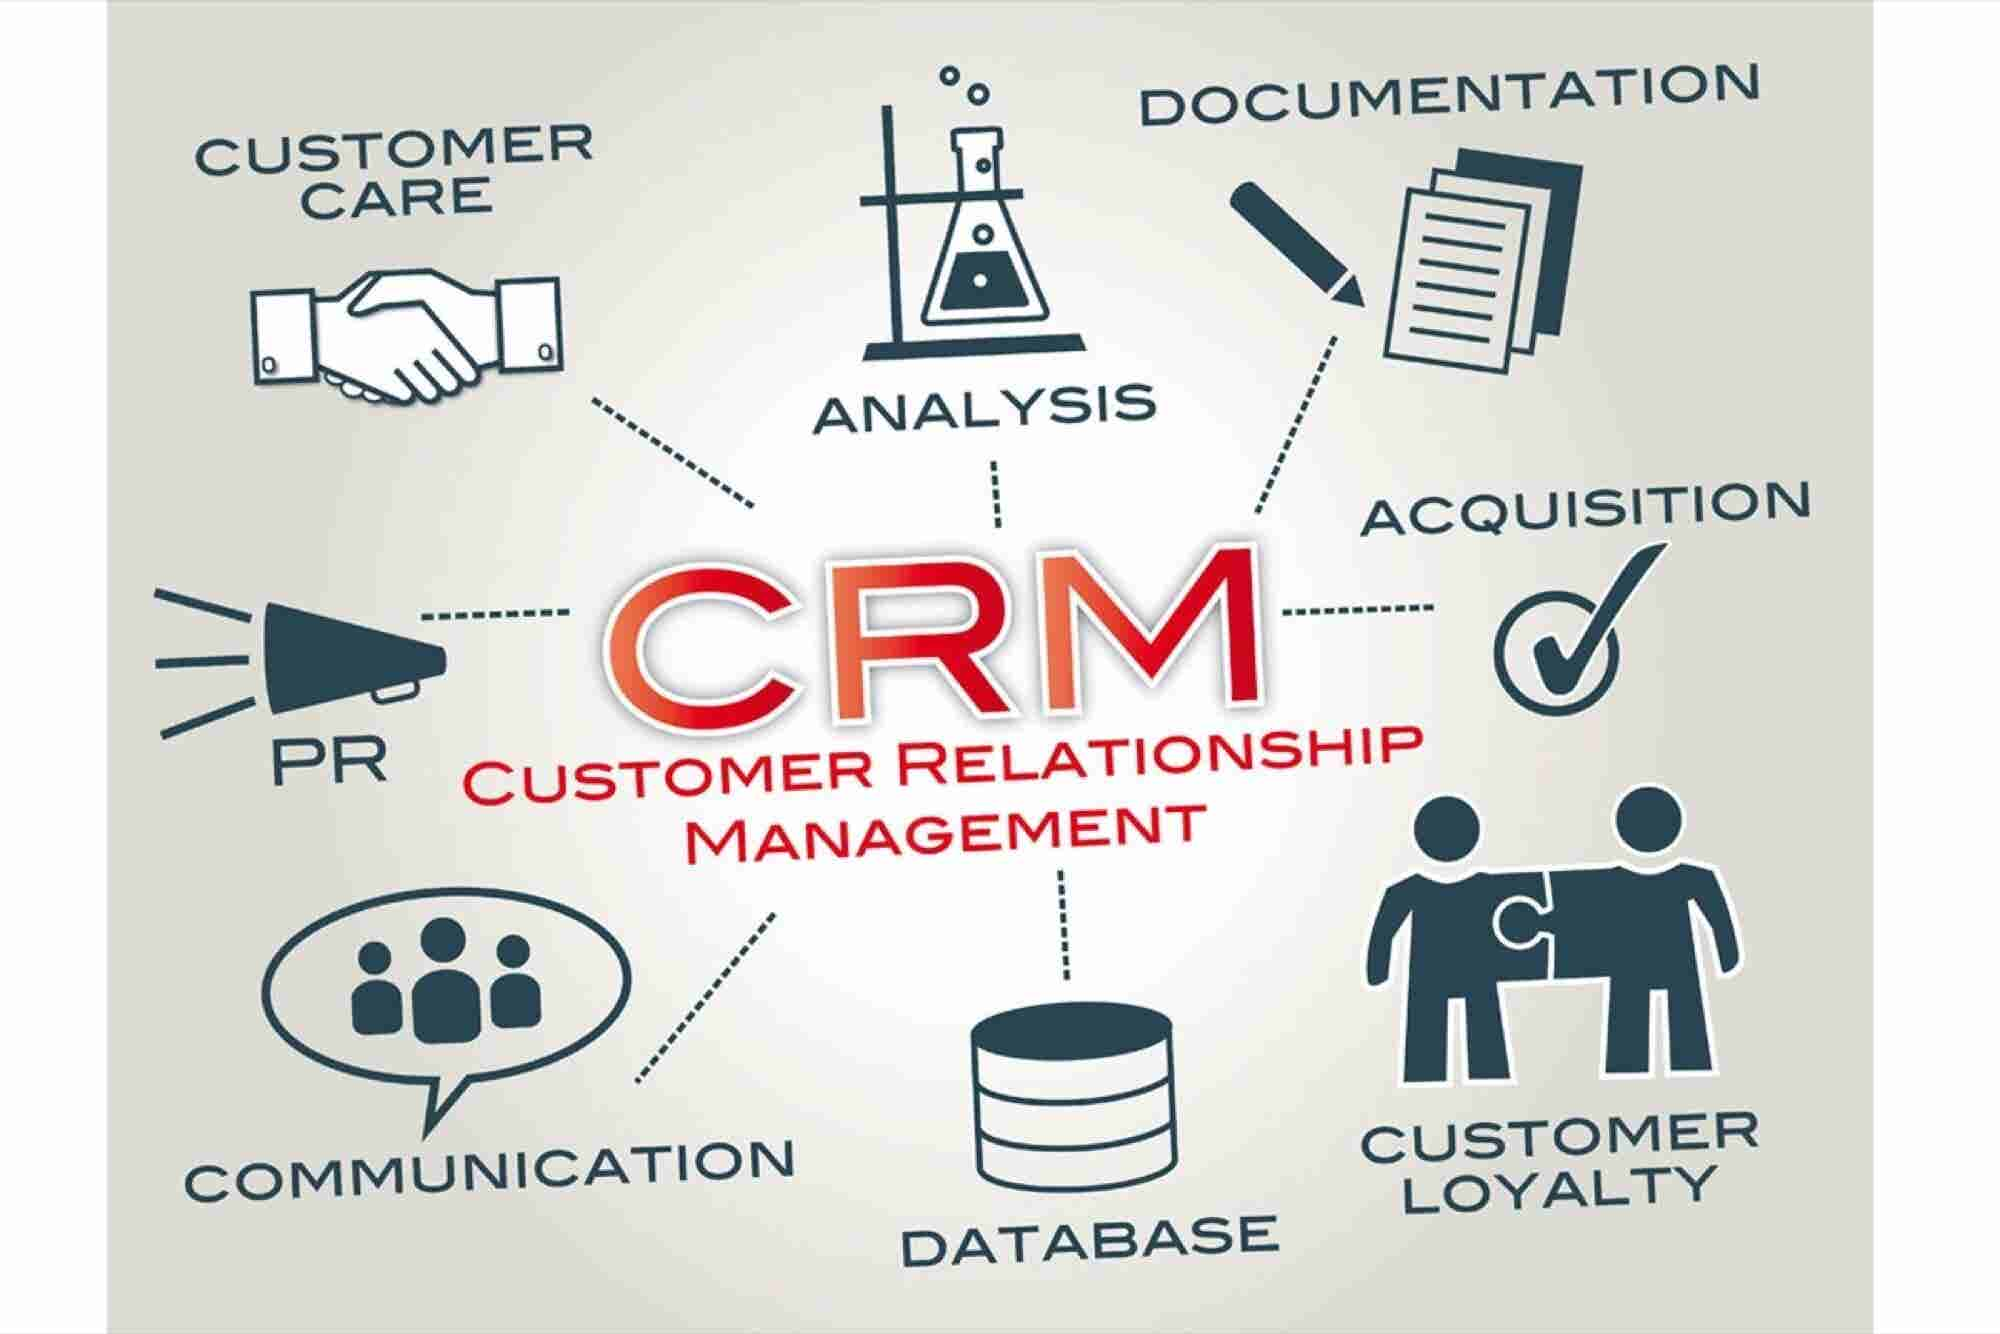 5 Benefits of Customer Relationship Management